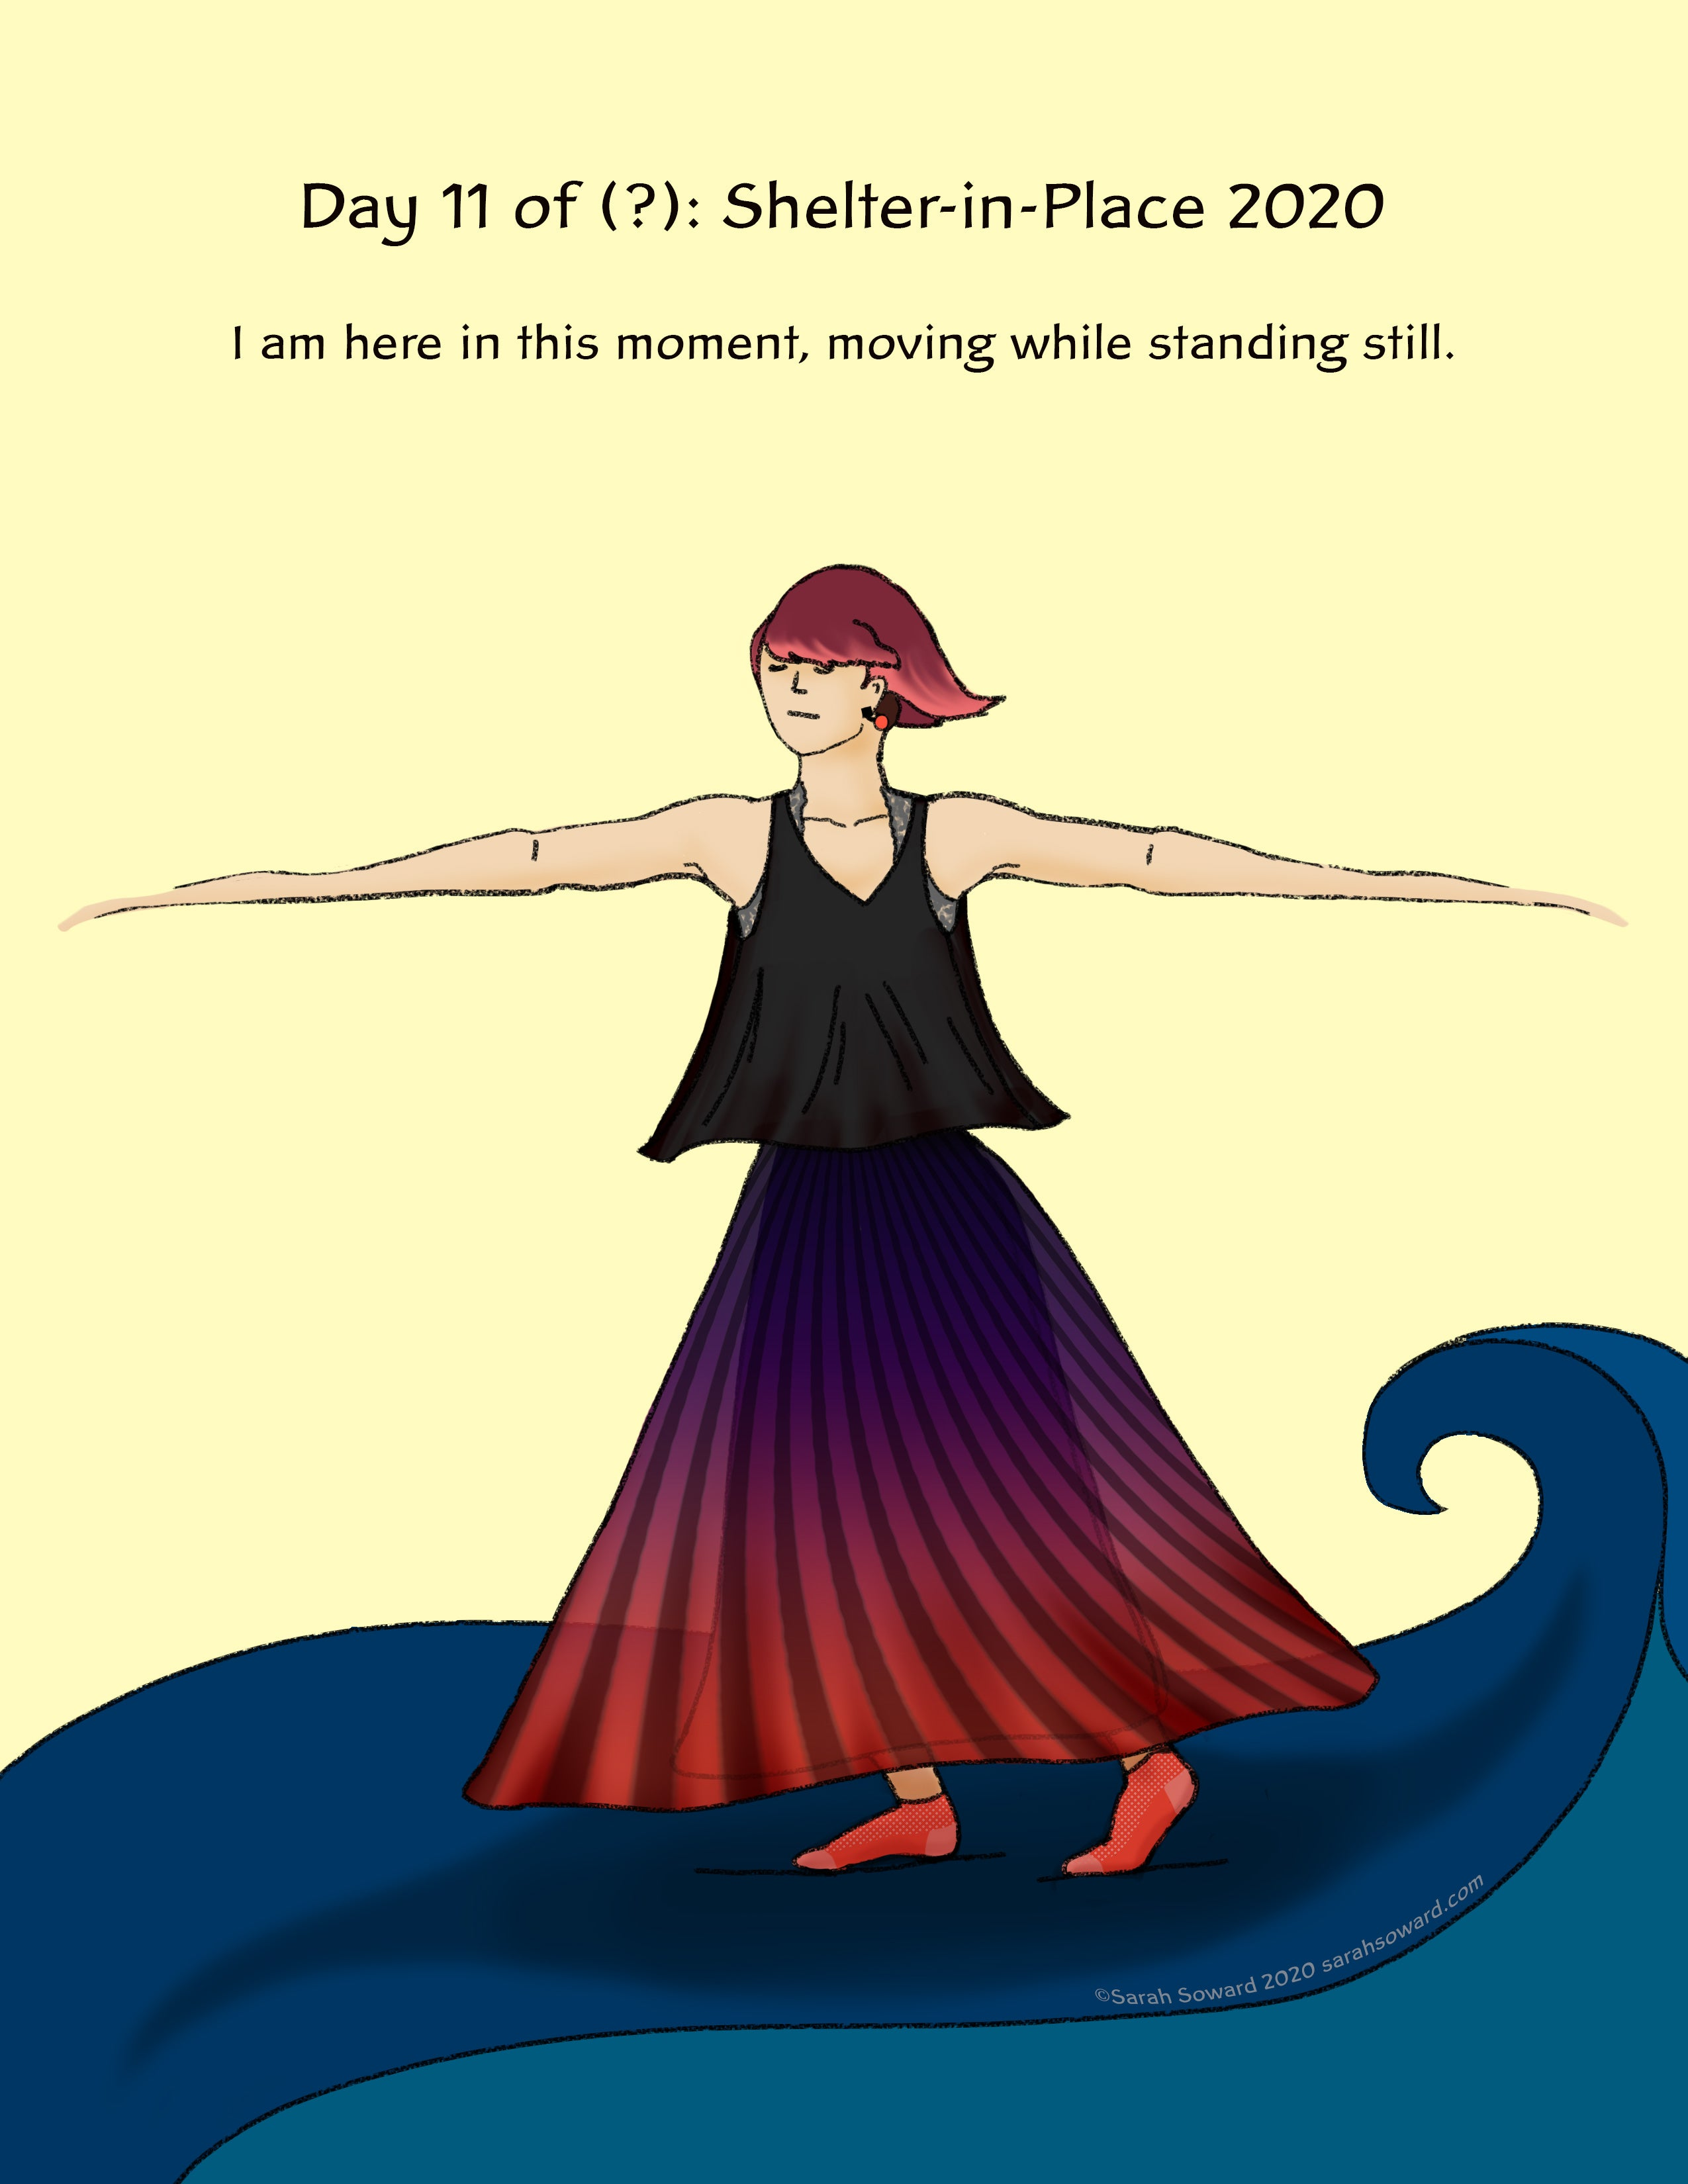 Image of a woman on top of a wave with her arms outstretched. She appears to be spinning. Text on the image reads, I am here in this moment, moving while standing still.